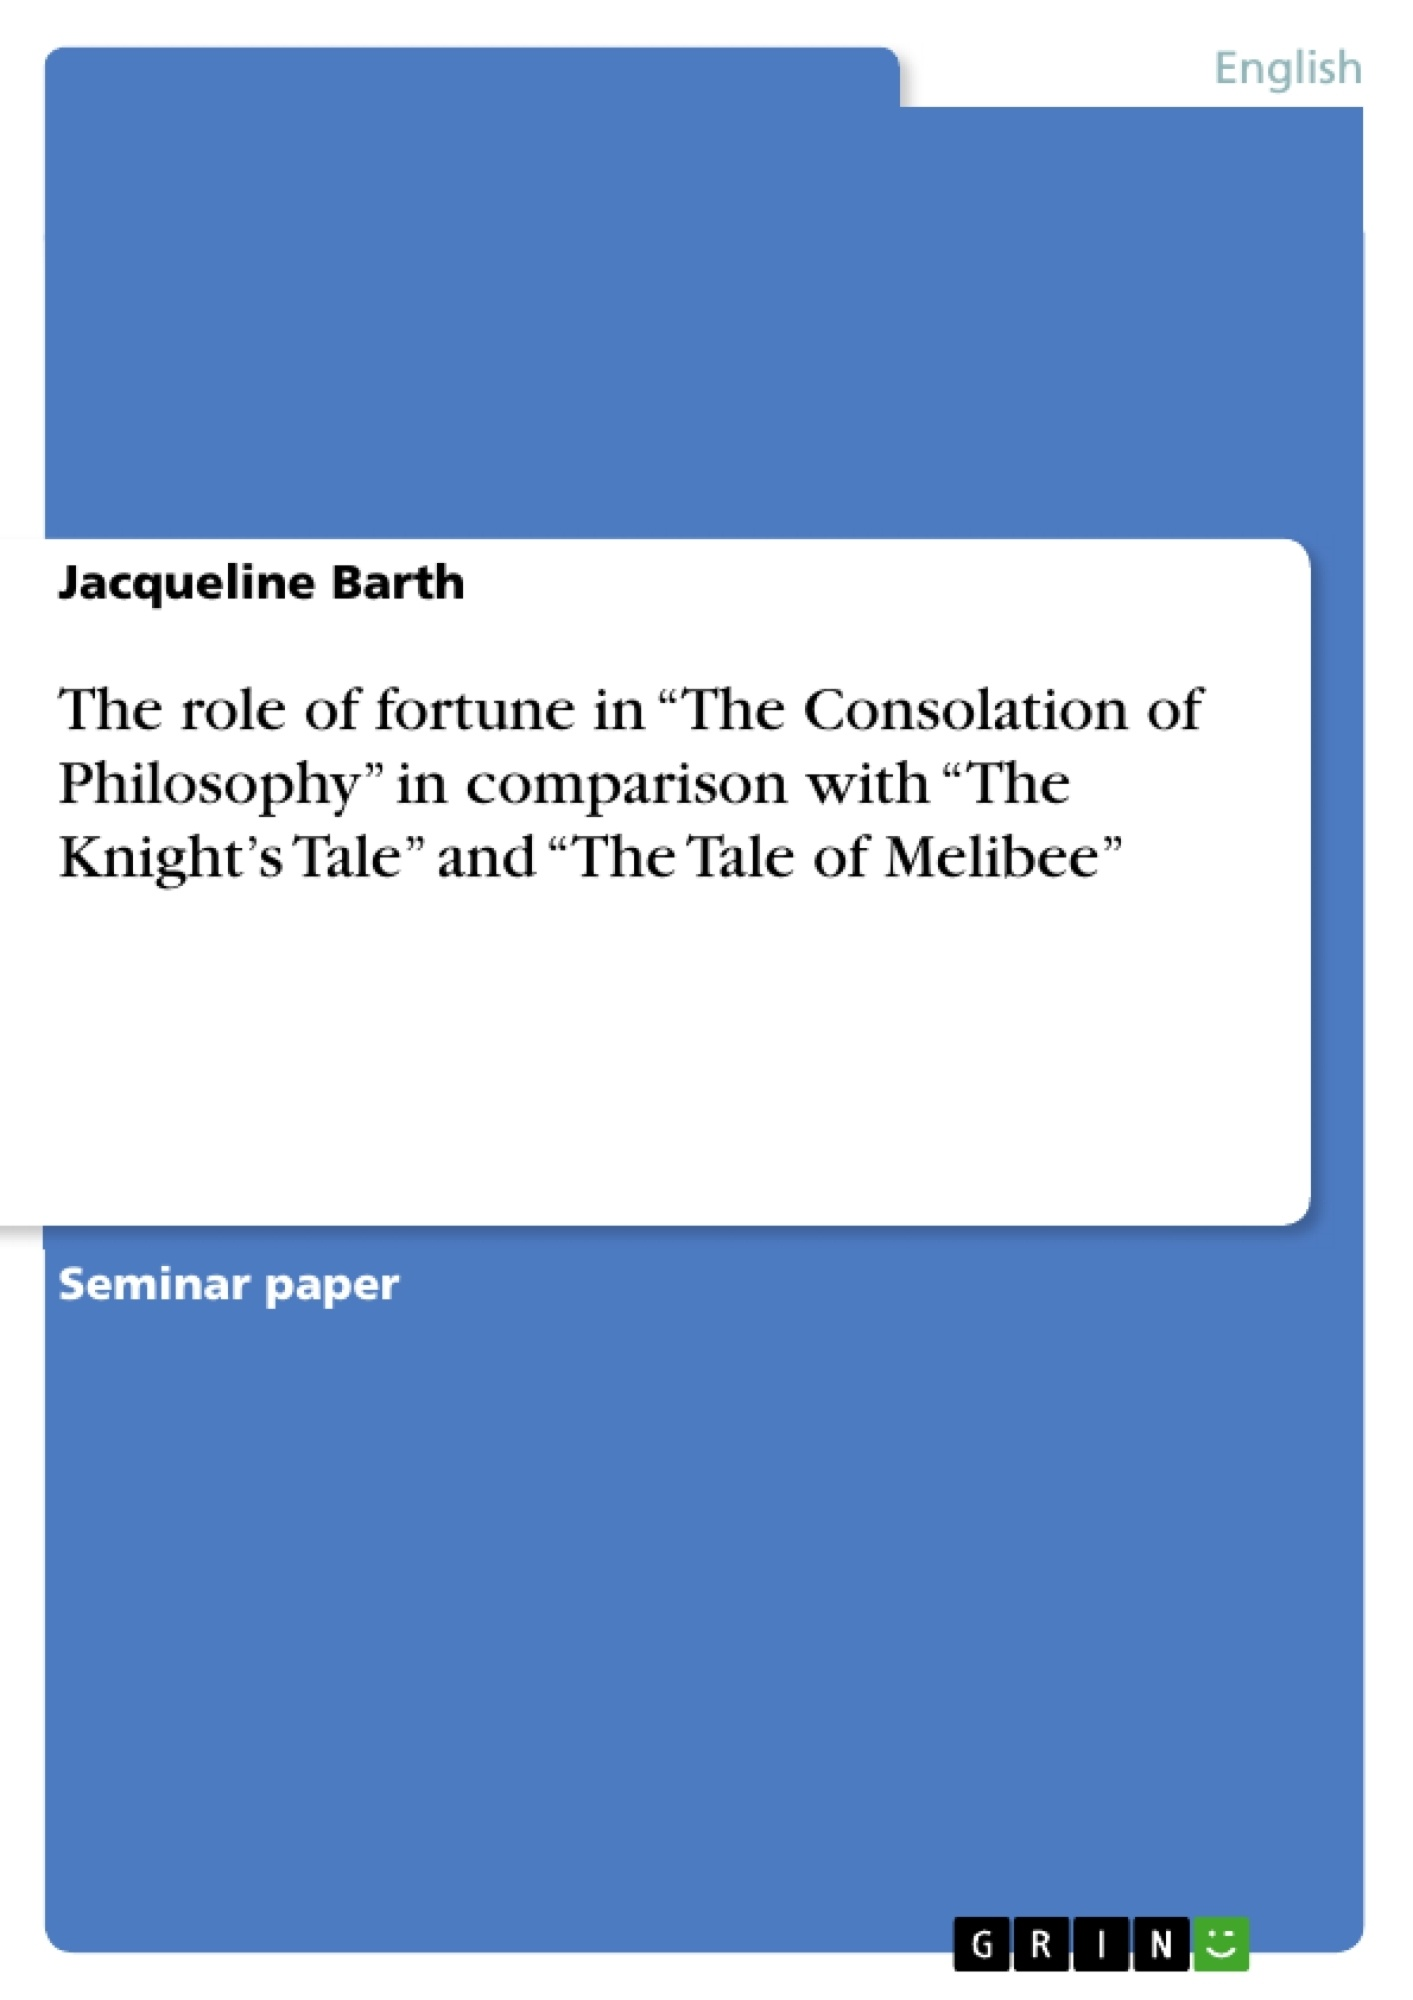 """Title: The role of fortune in """"The Consolation of Philosophy"""" in comparison with """"The Knight's Tale"""" and """"The Tale of Melibee"""""""